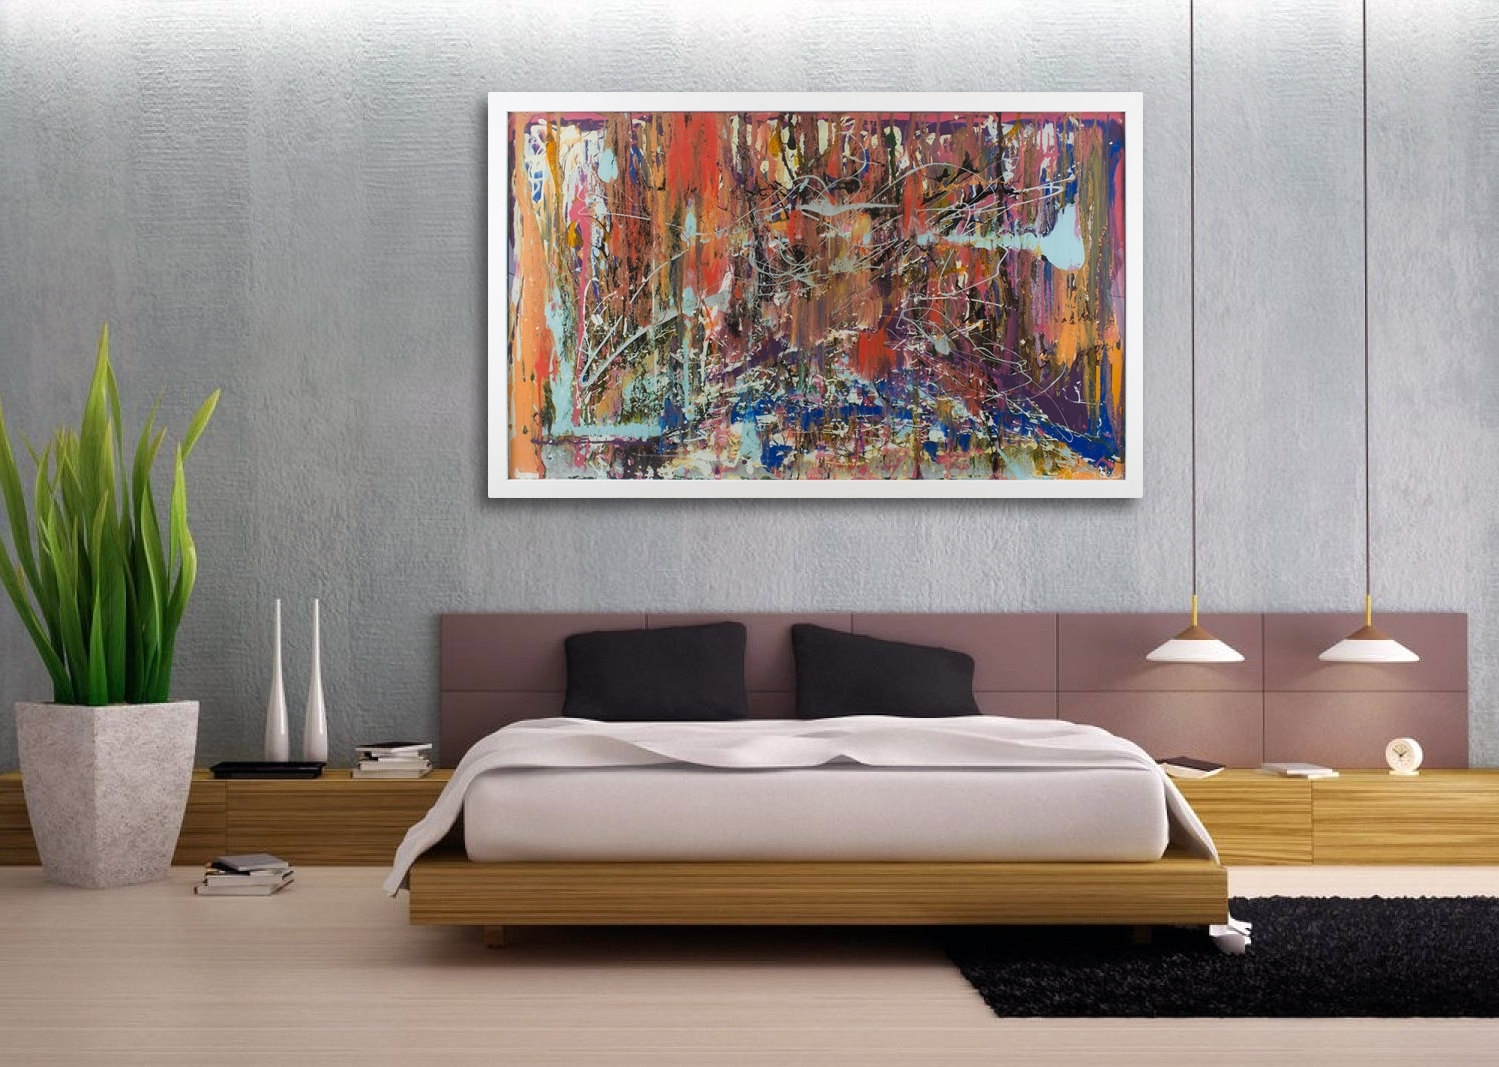 Innovative Way Modern Wall Decor Room — Joanne Russo Homesjoanne With Regard To Most Recent Modern Abstract Huge Wall Art (Gallery 1 of 20)